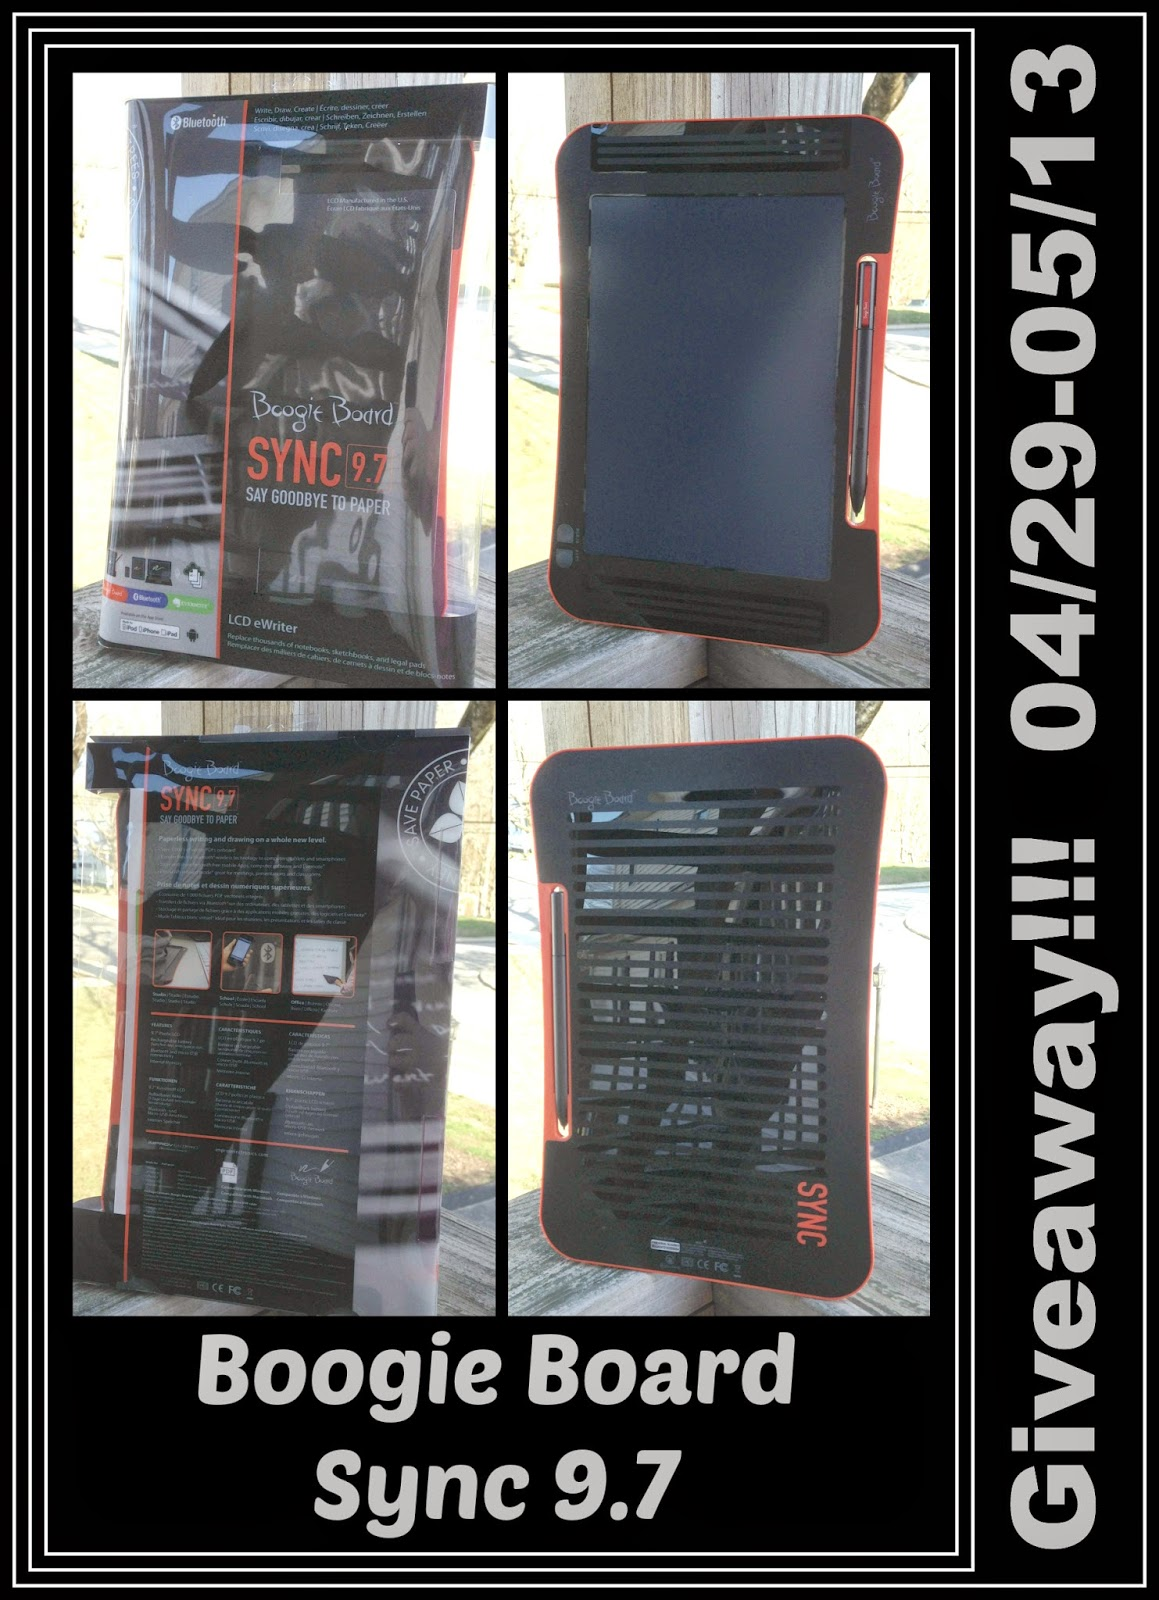 Enter the Boogie Board Sync 9.7 Giveaway. Ends 5/13.